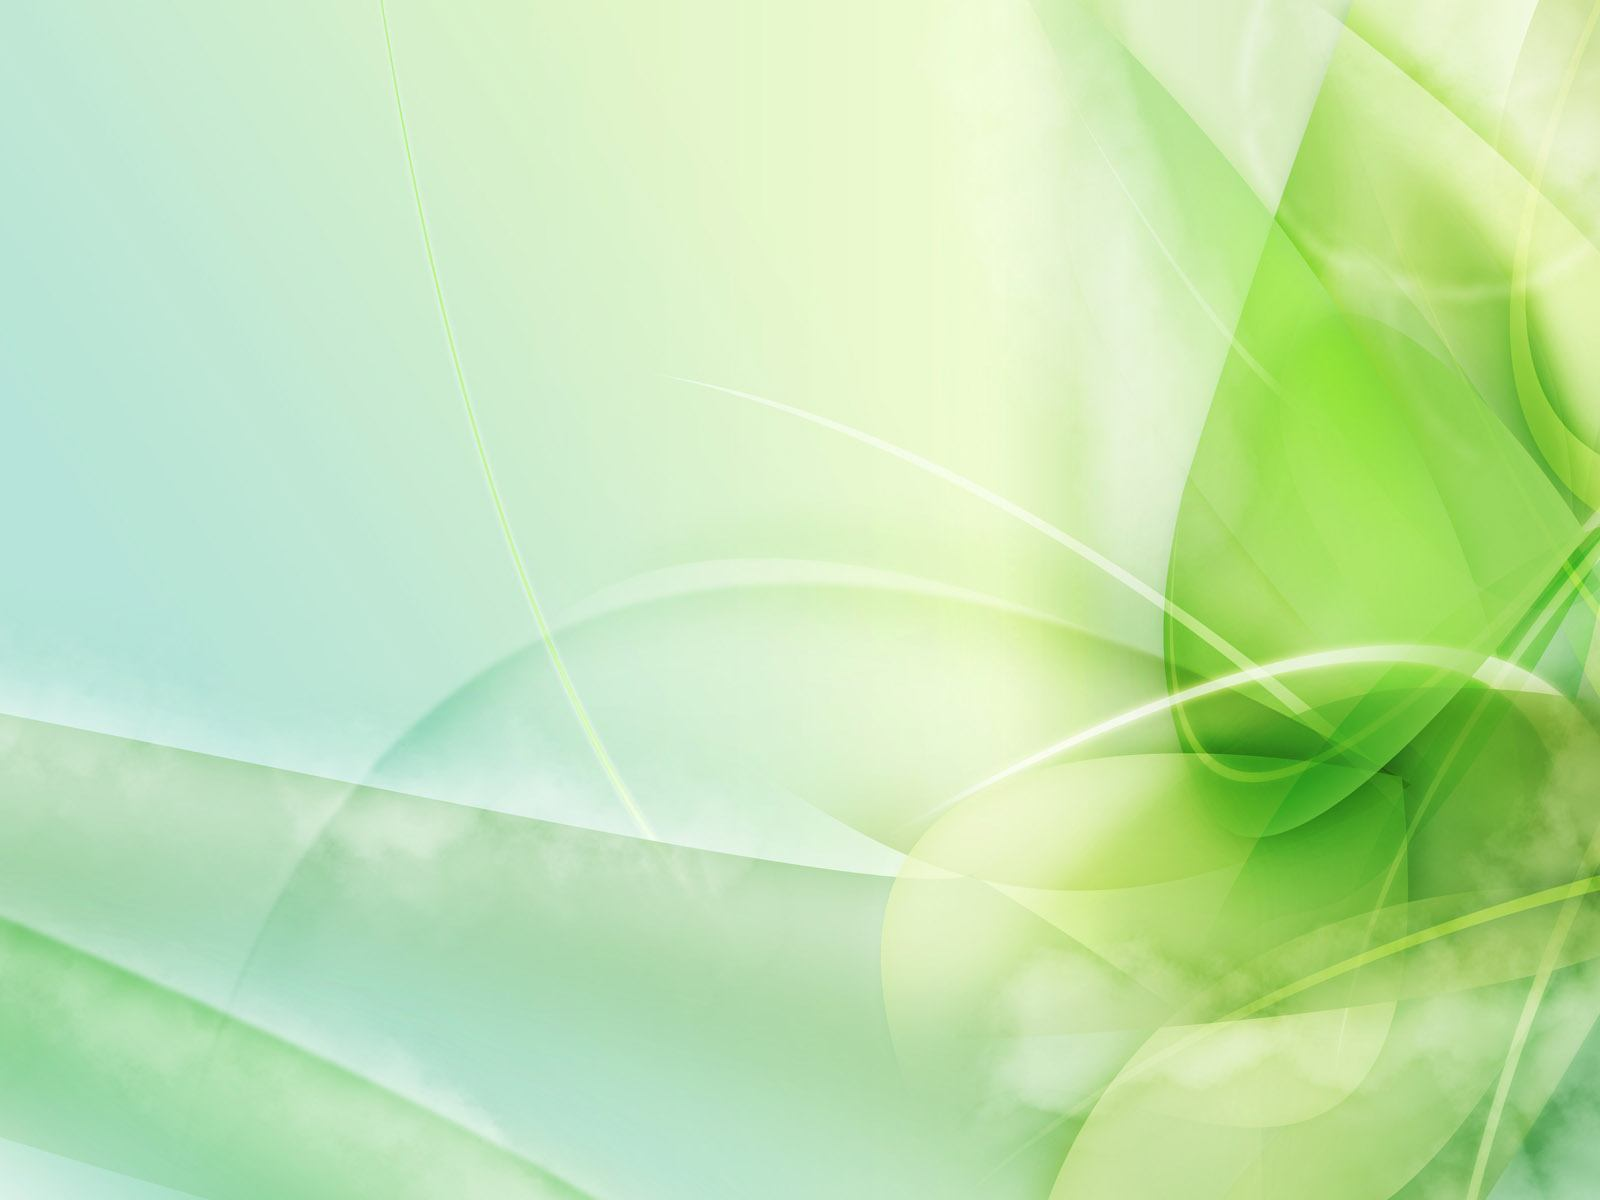 Green Abstract 1080p Wallpaper Free Download Wallpaper